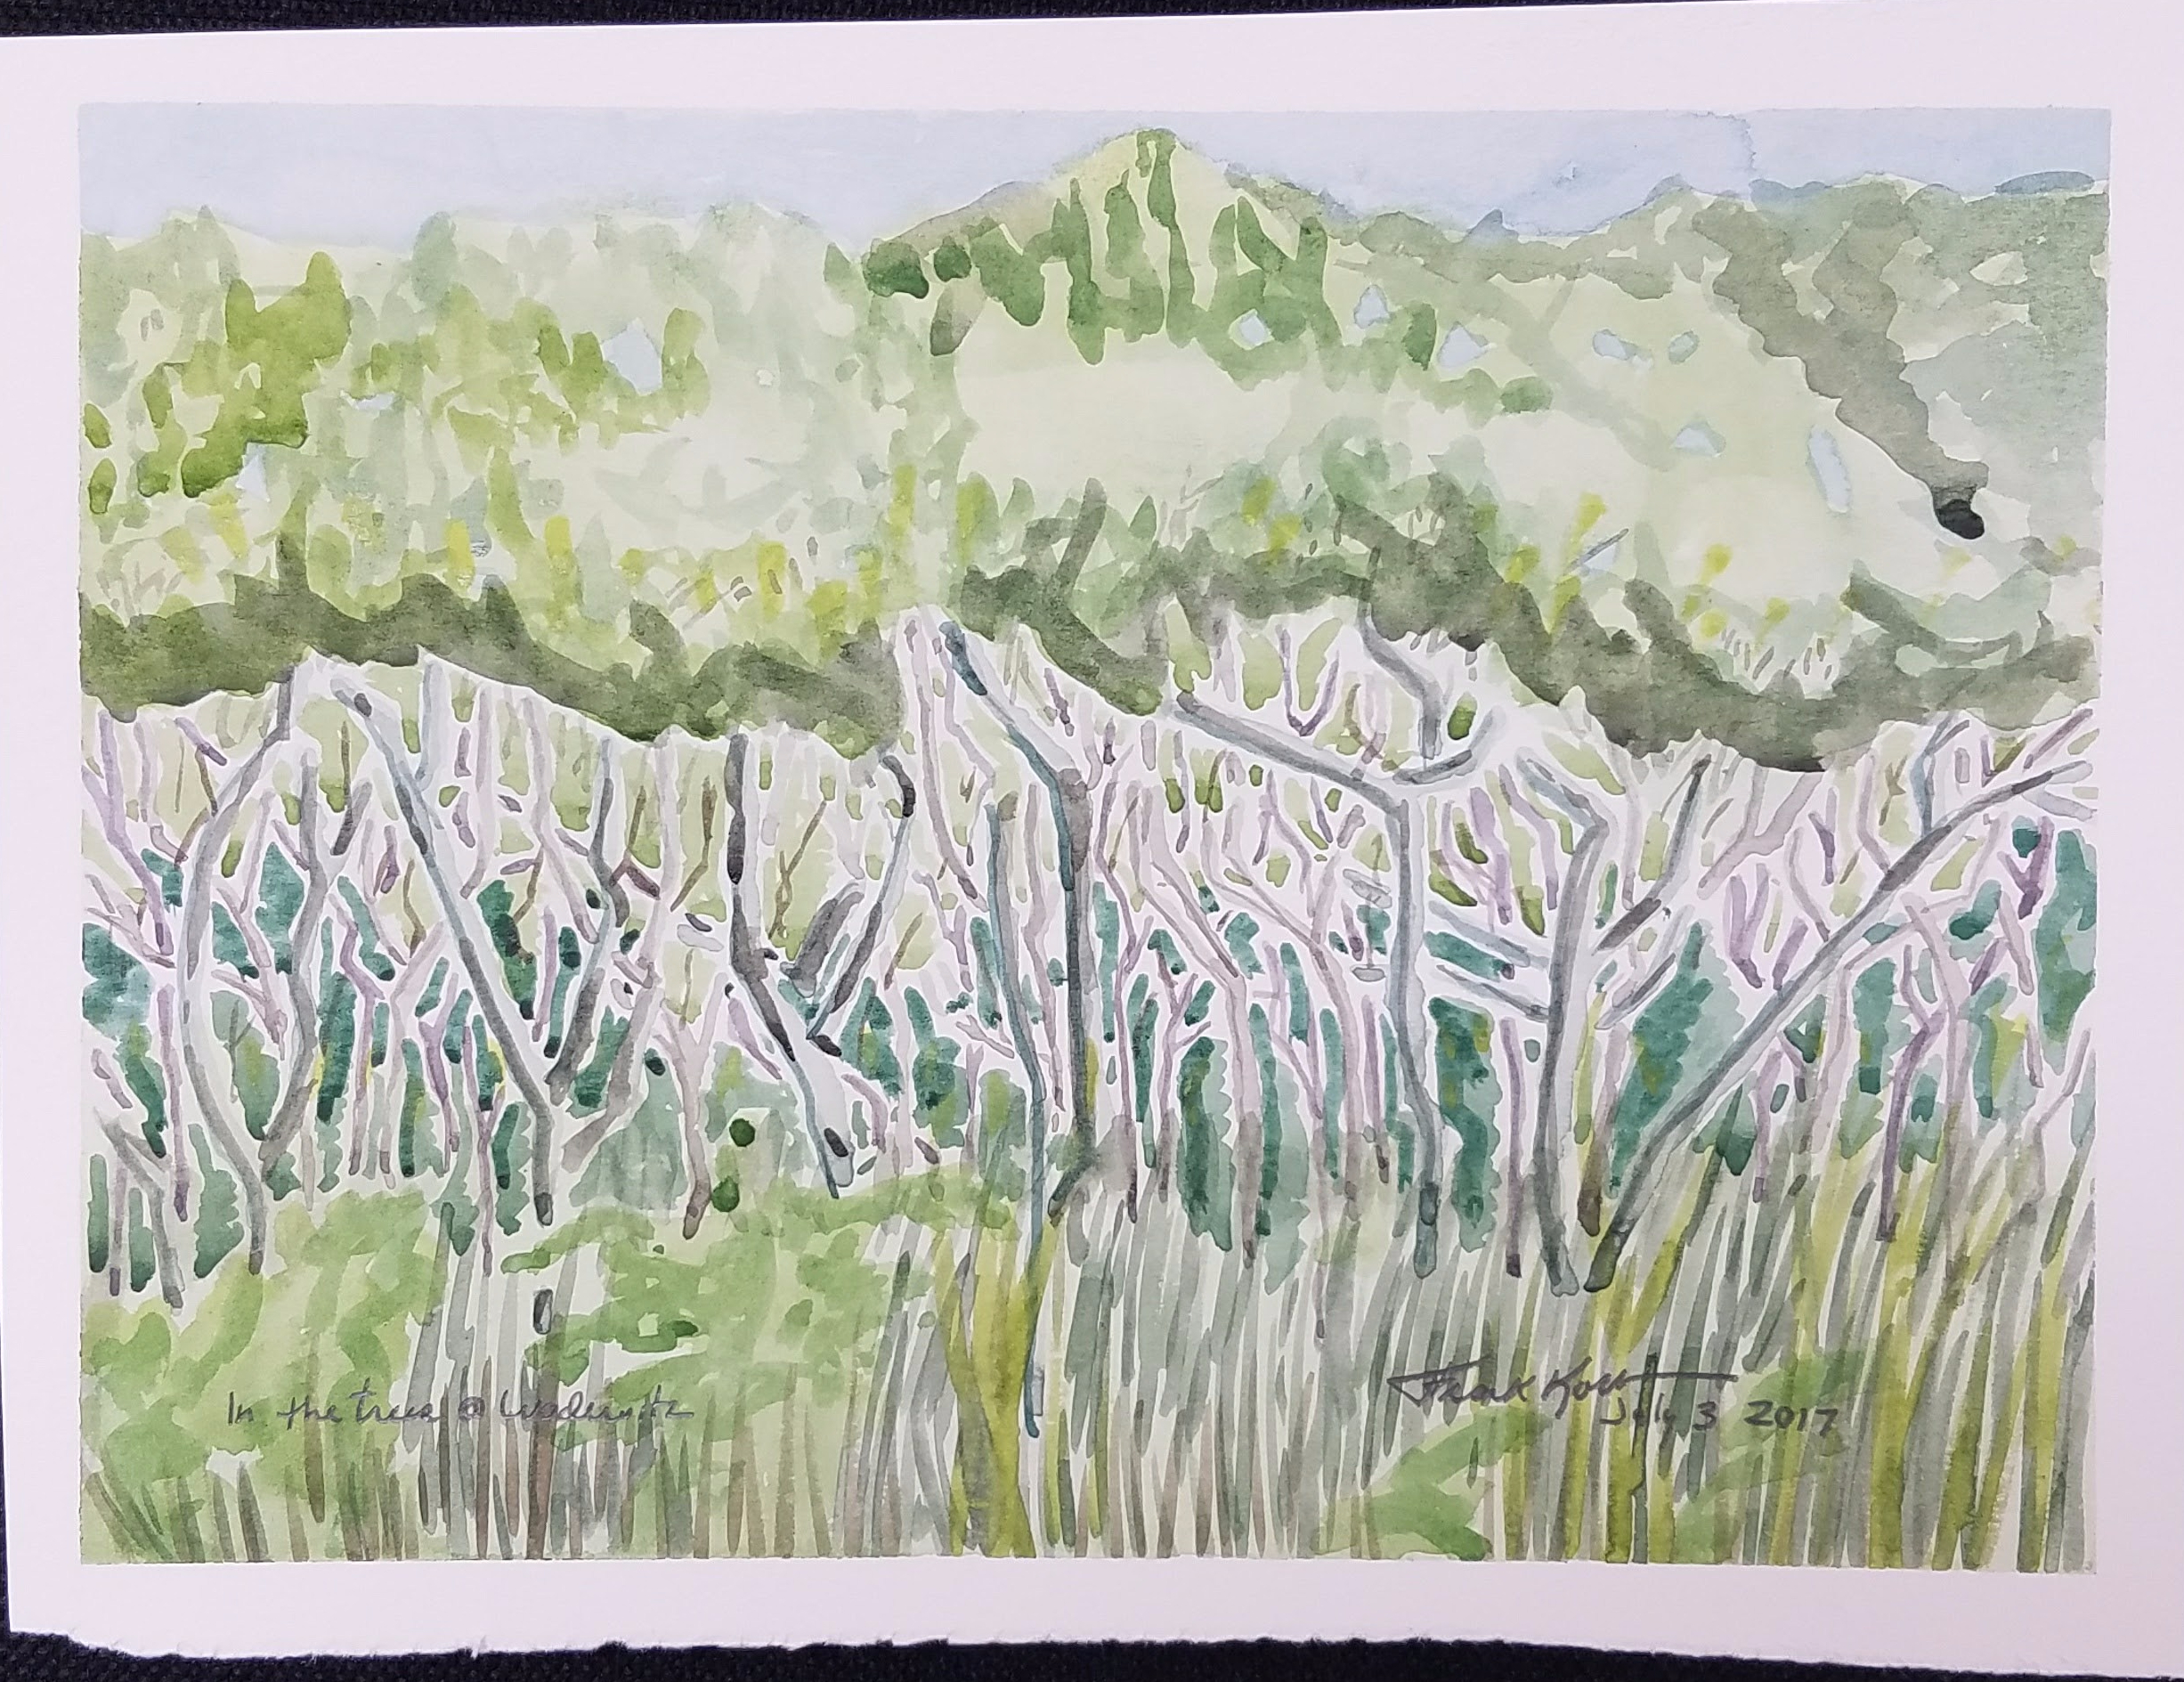 """In the Trees @ Wadewitz"", Frank Korb, Watercolor on Paper, July 3, 2017."